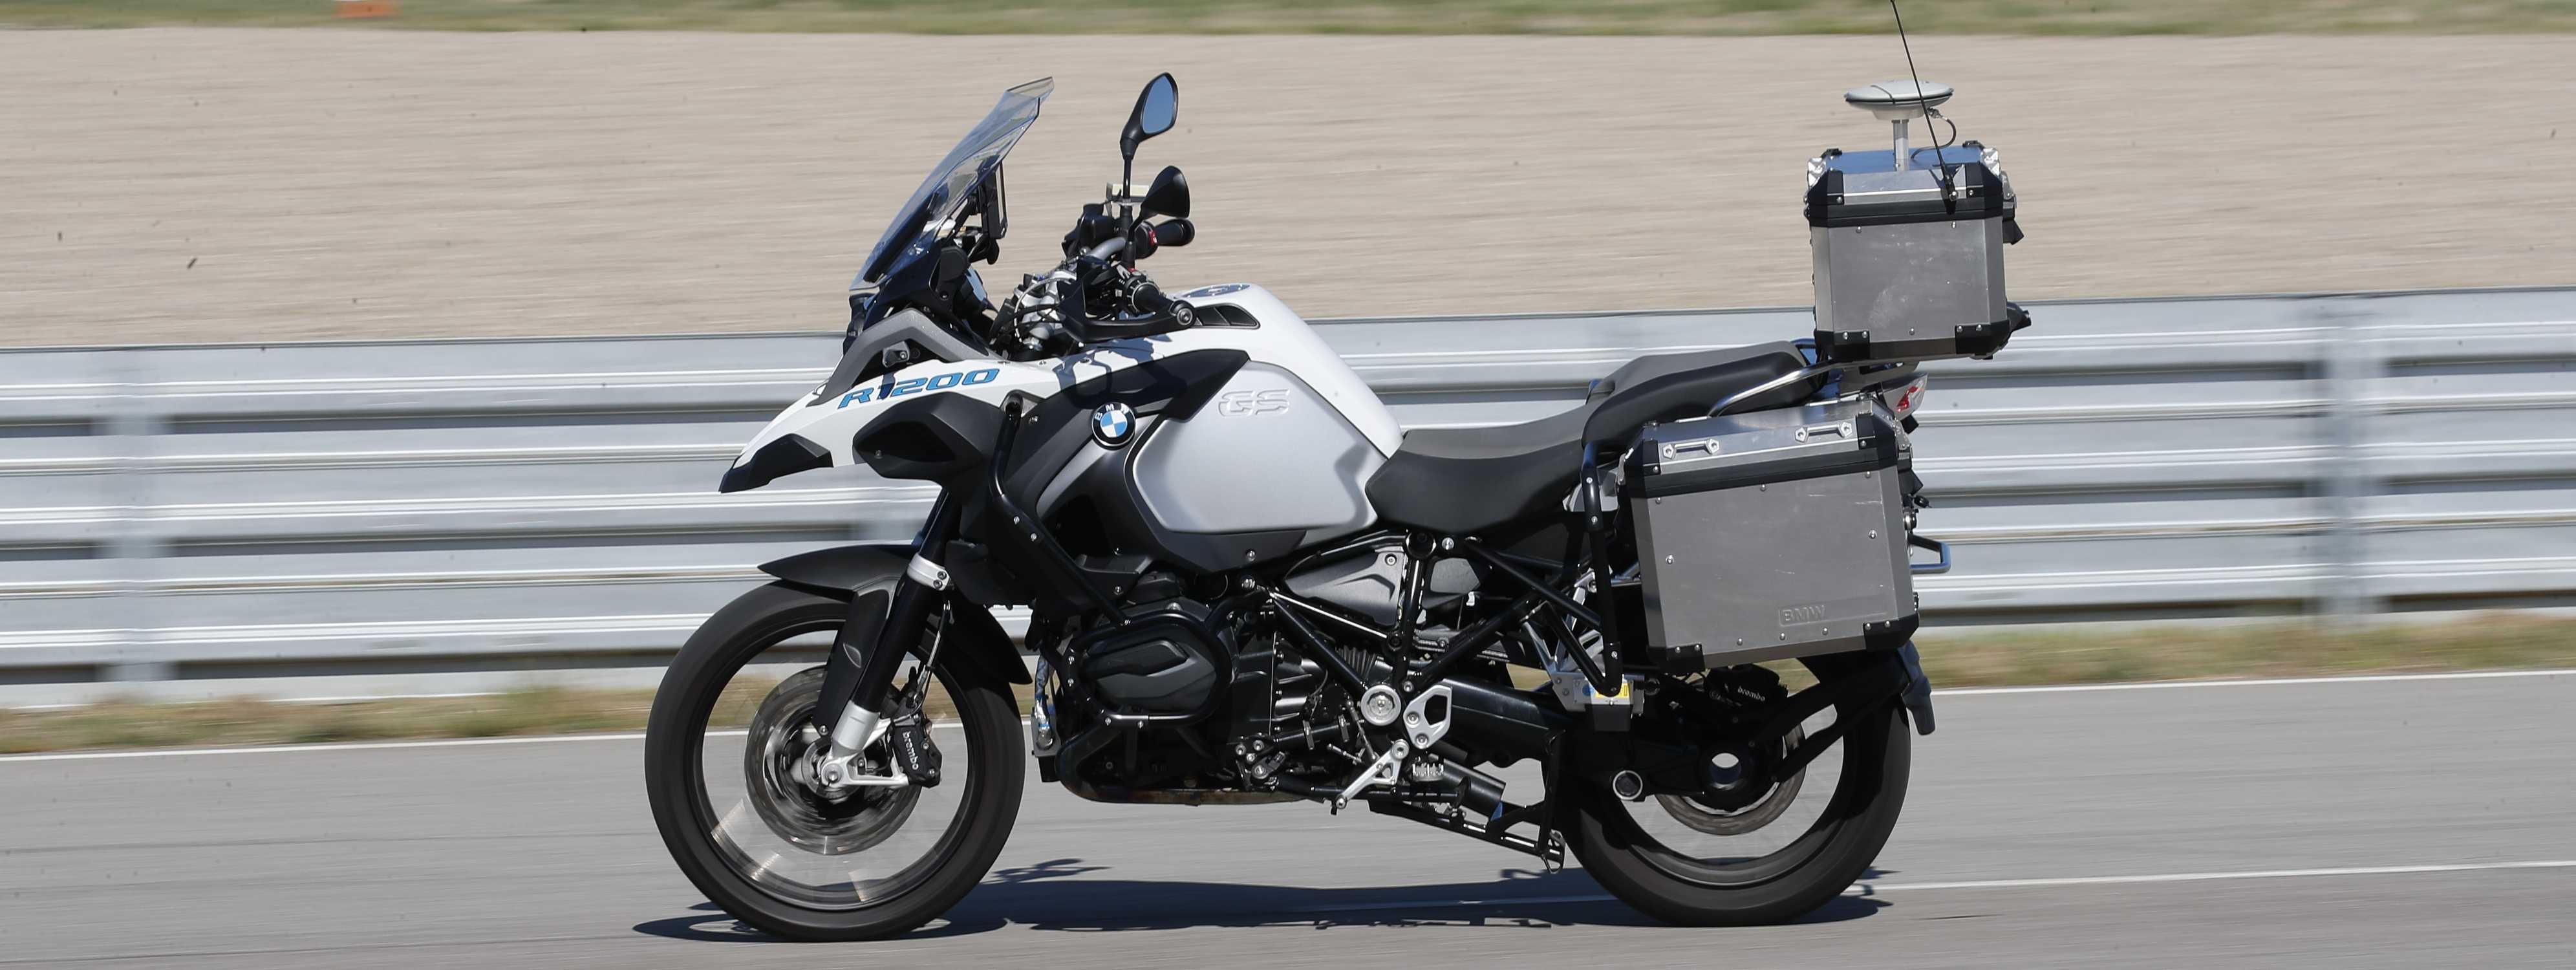 Bmw Motorrad Presents Autonomous Driving Bmw R 1200 Gs Outlook On The Future Of Motorcycle Safety And Technology In Miramas